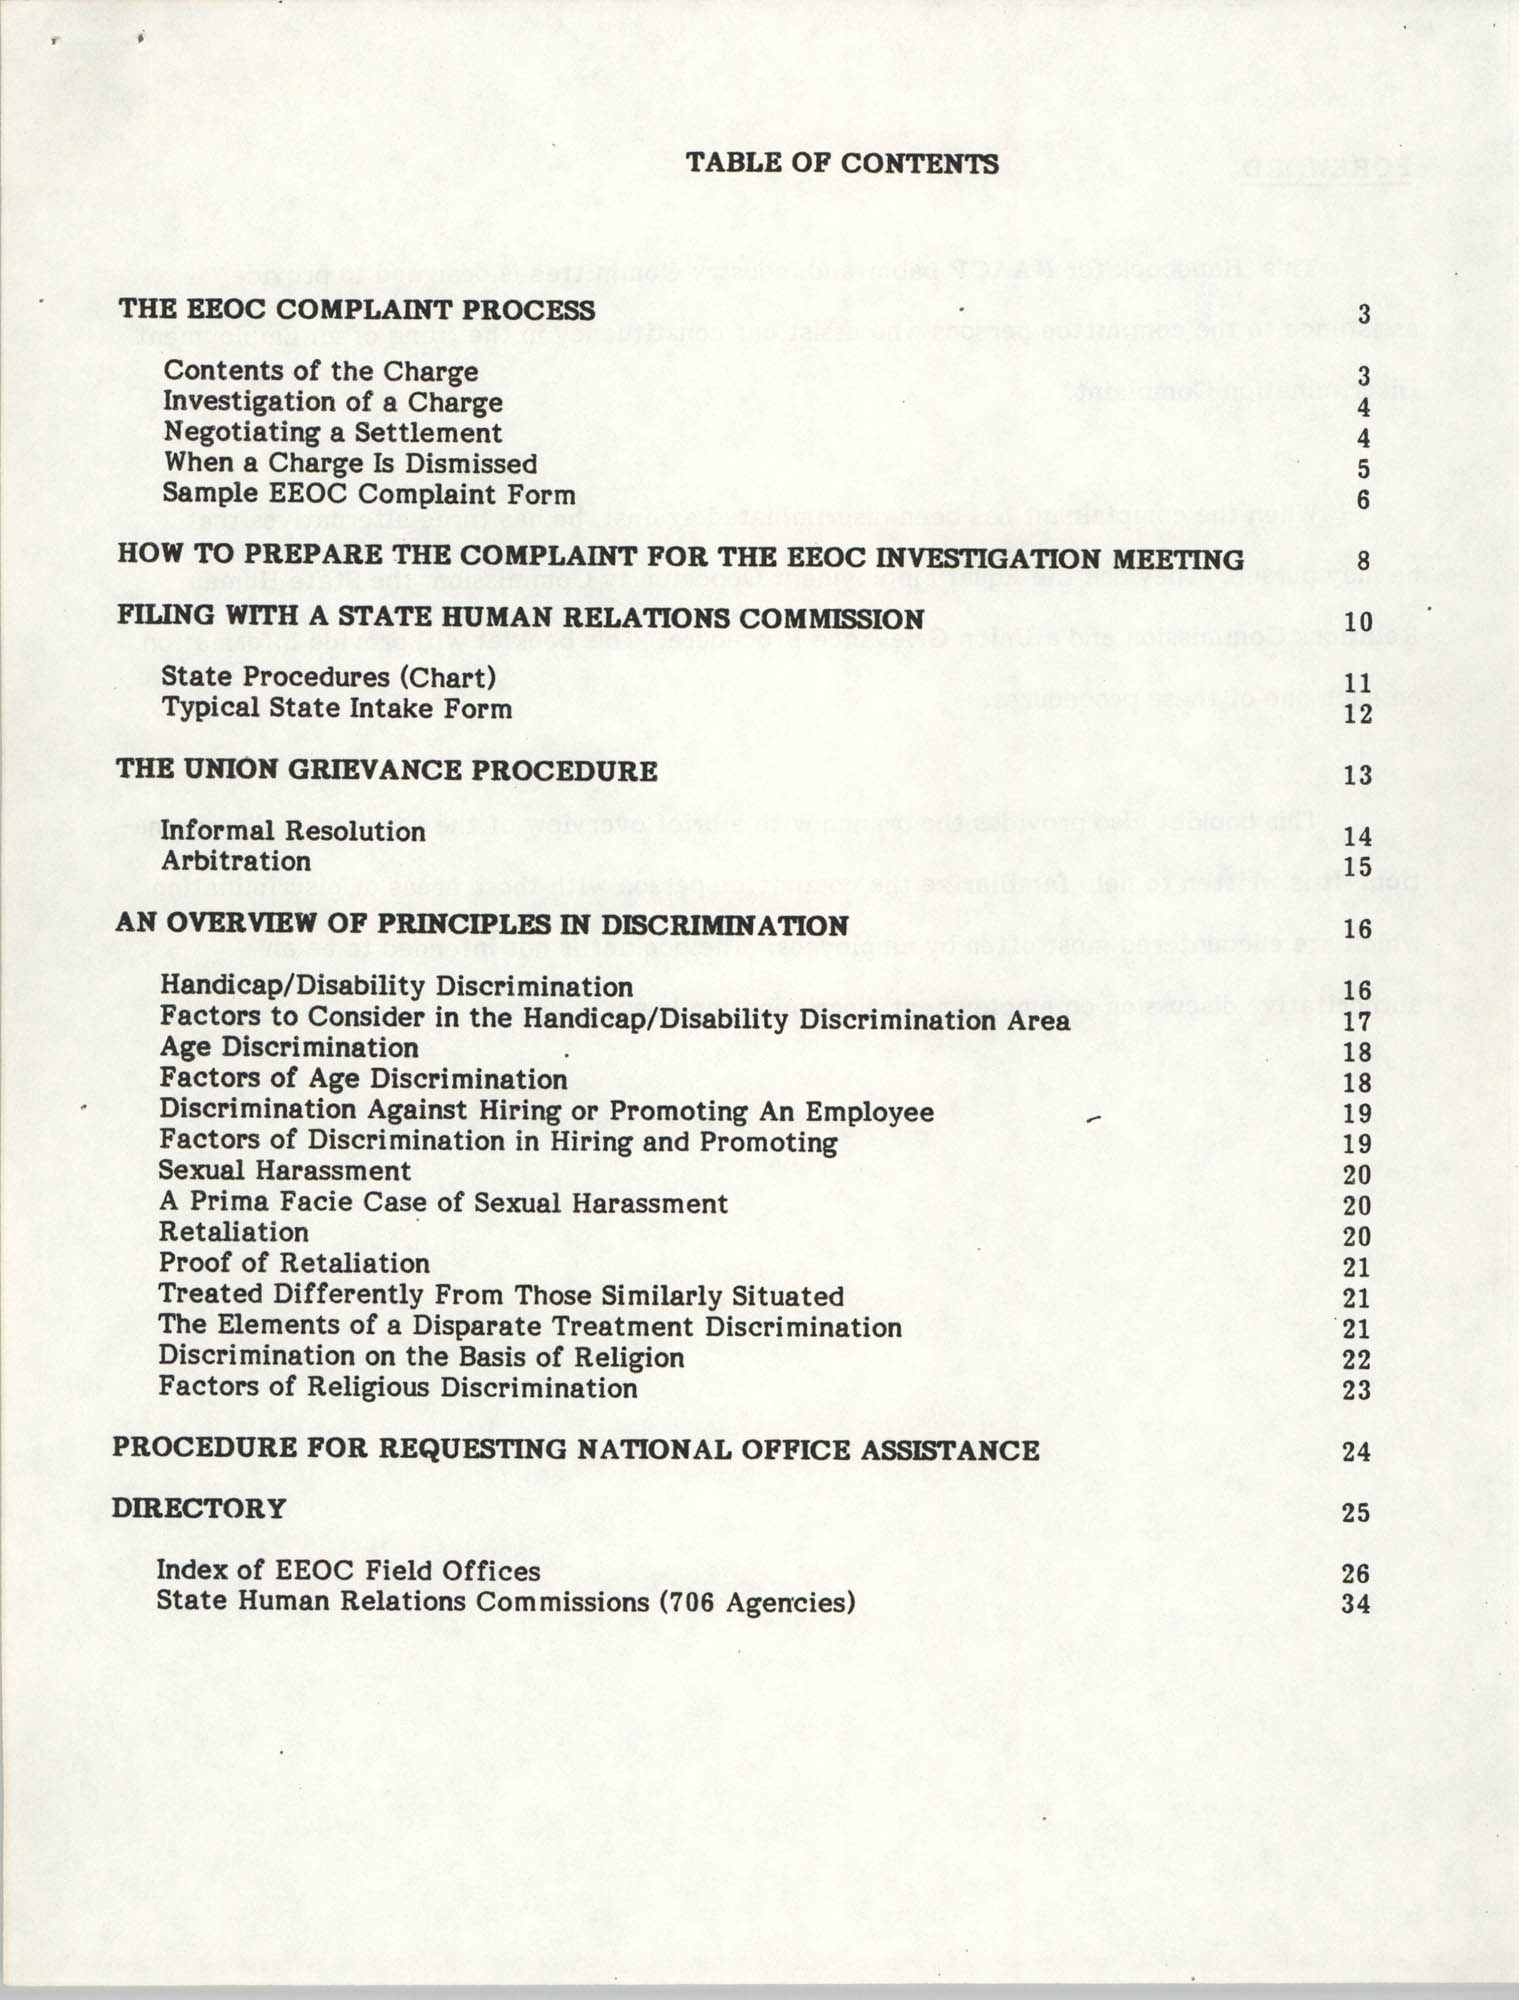 Handbook for Addressing Discrimination Complaints, NAACP Labor and Industry Committees, Table of Contents